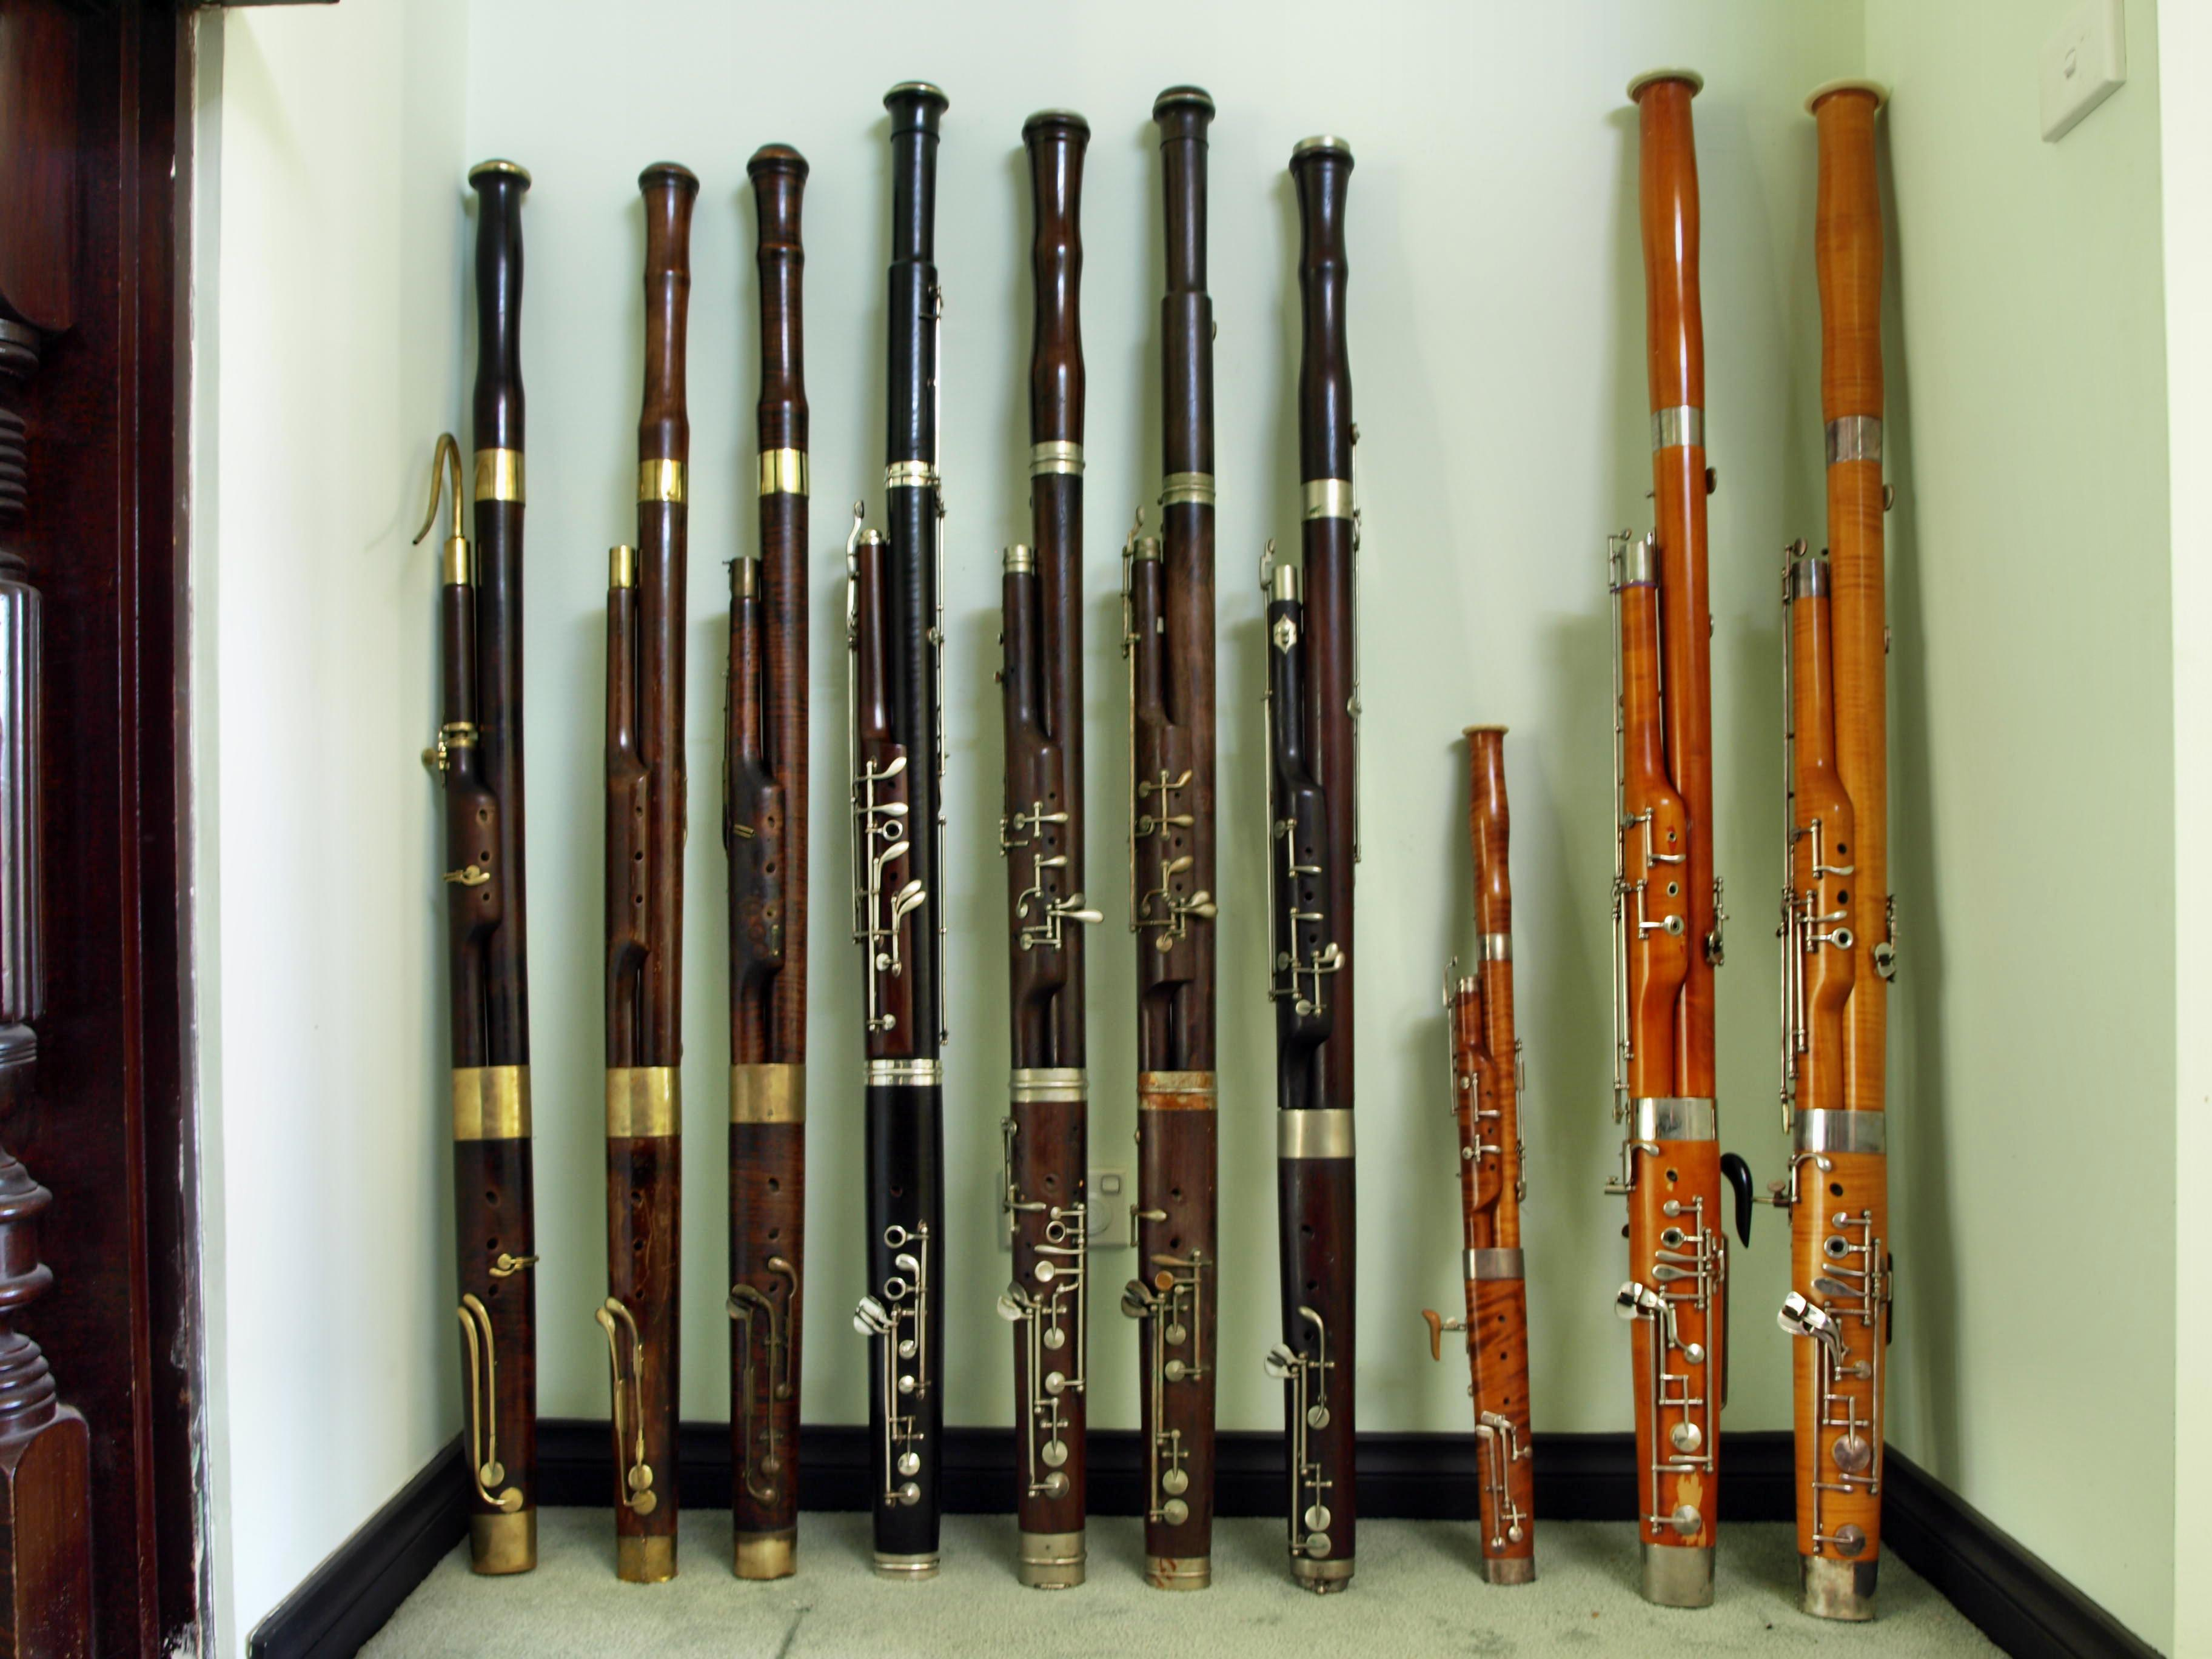 This should be bassoons-front.jpeg.  Is it missing?